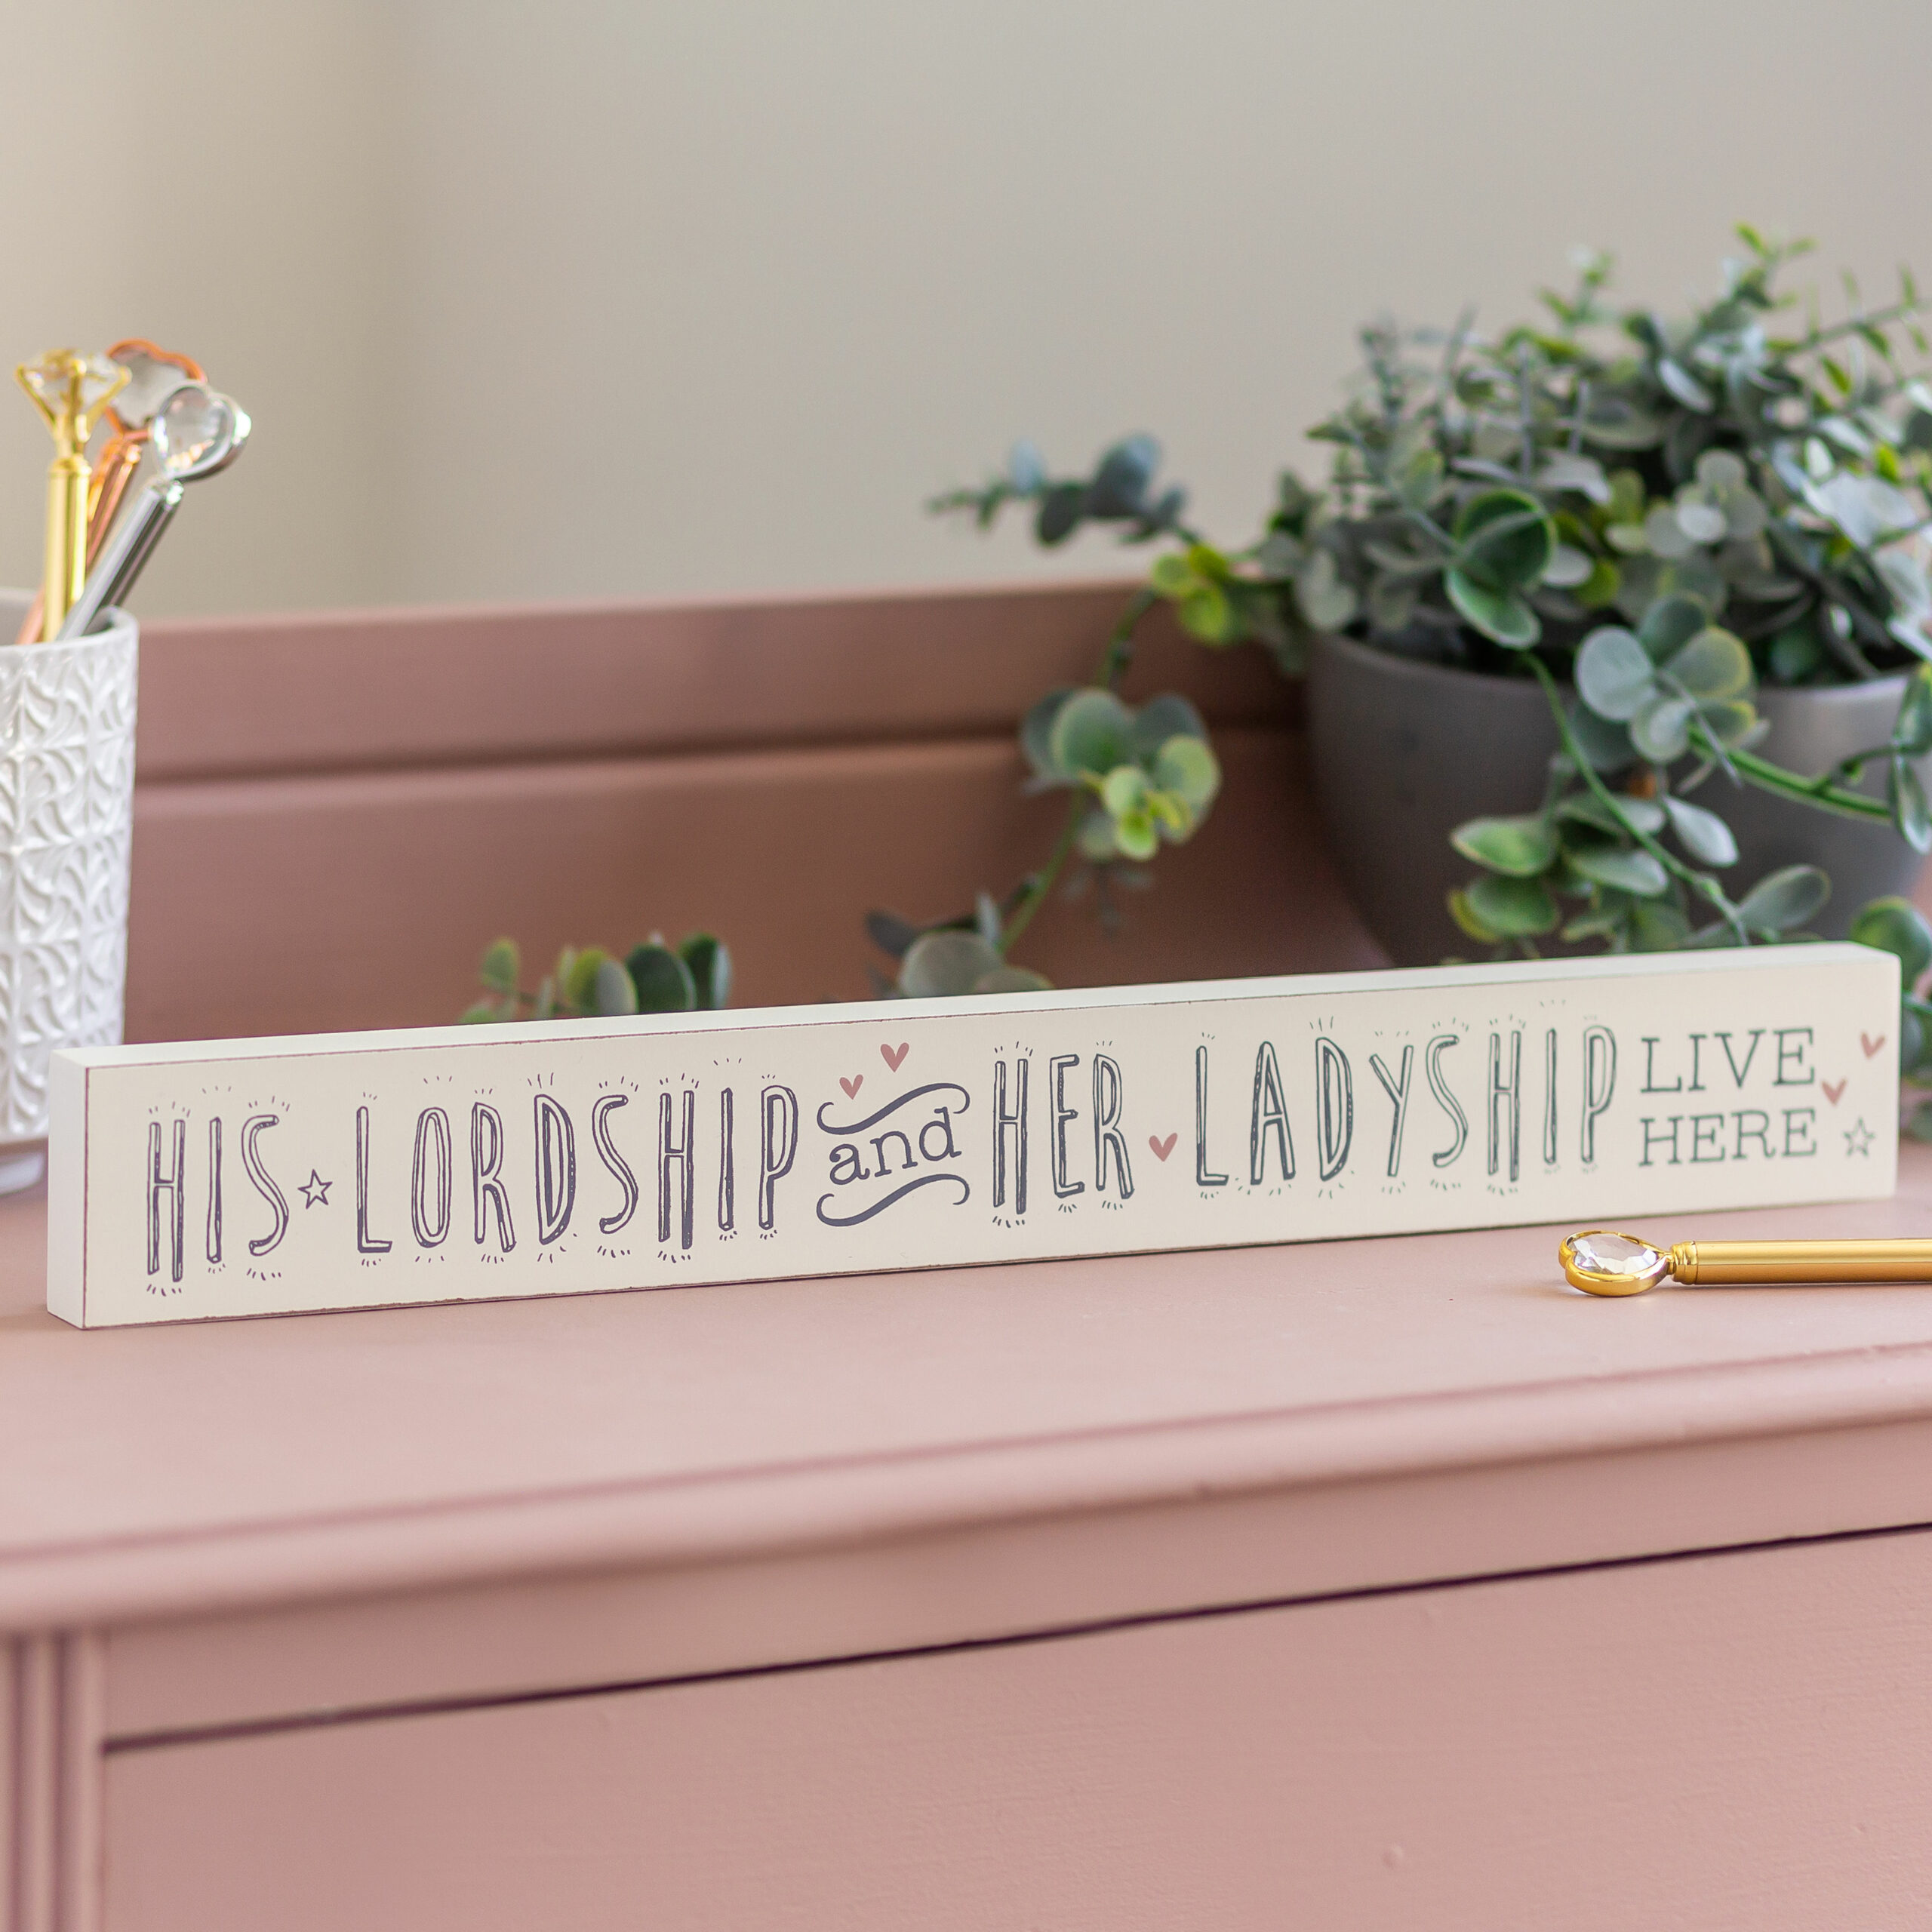 Love Life His Lordship and Her Wooden Plaque